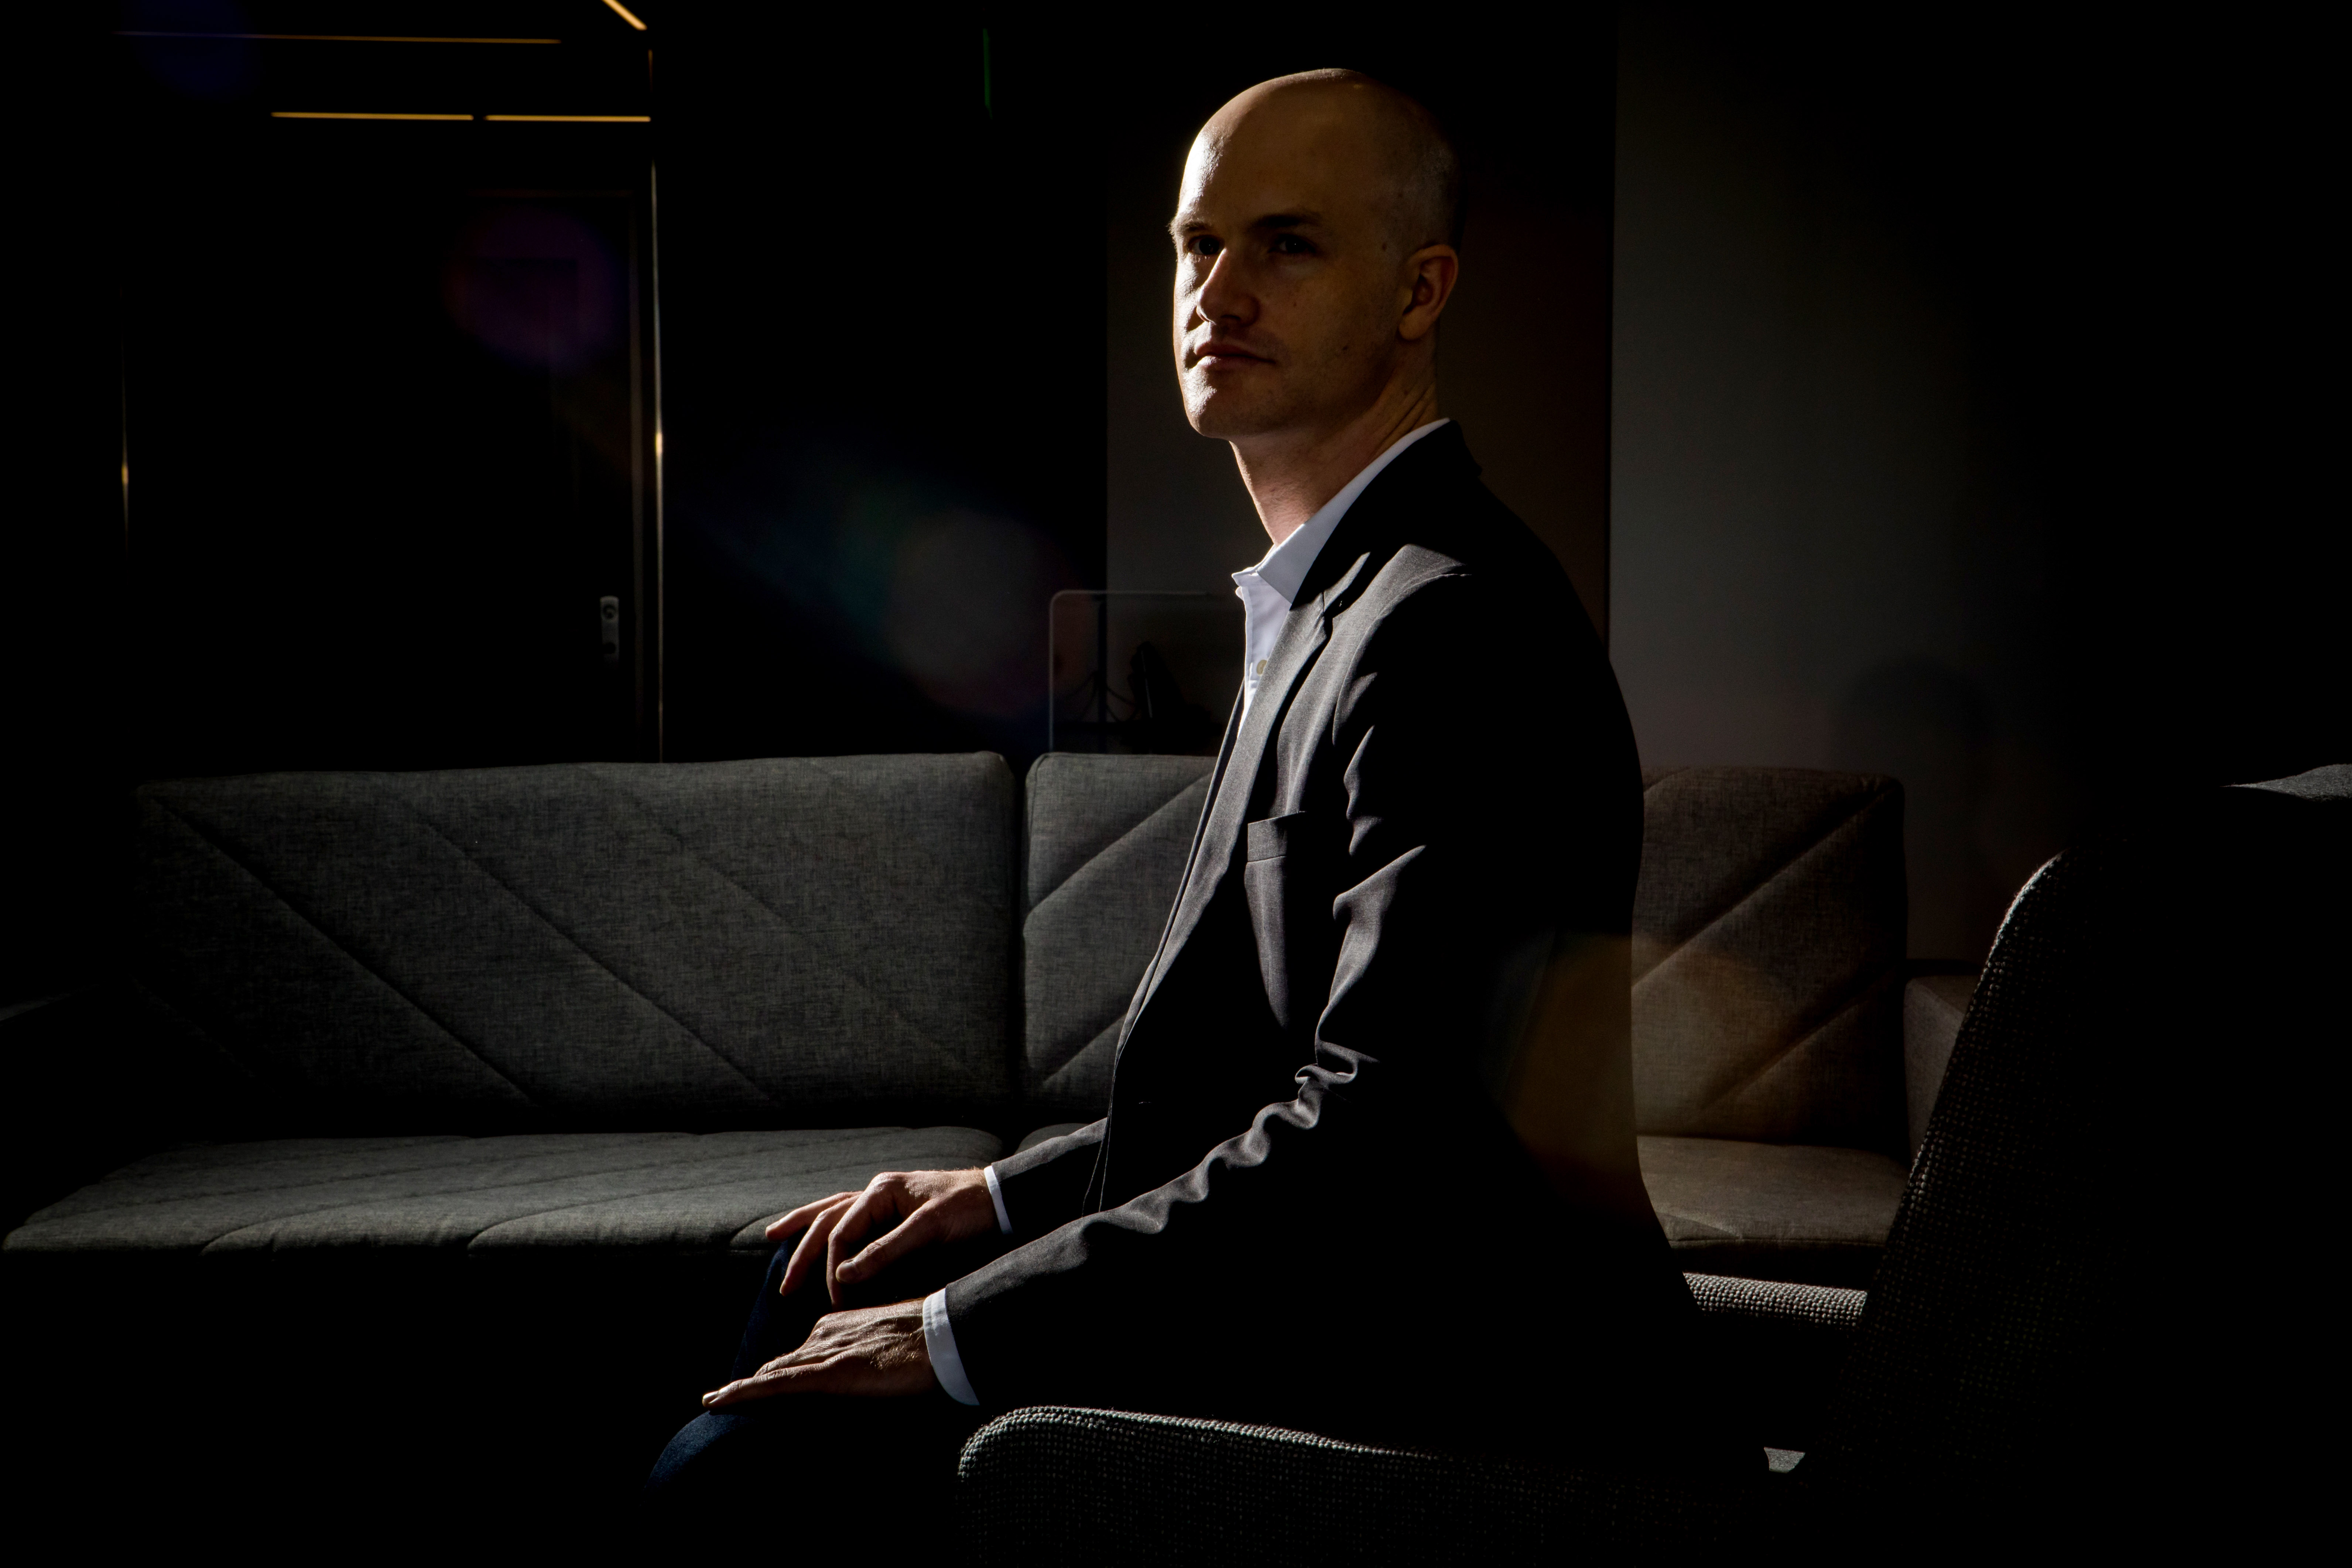 Hackers drained their Coinbase accounts. The victims want answers.